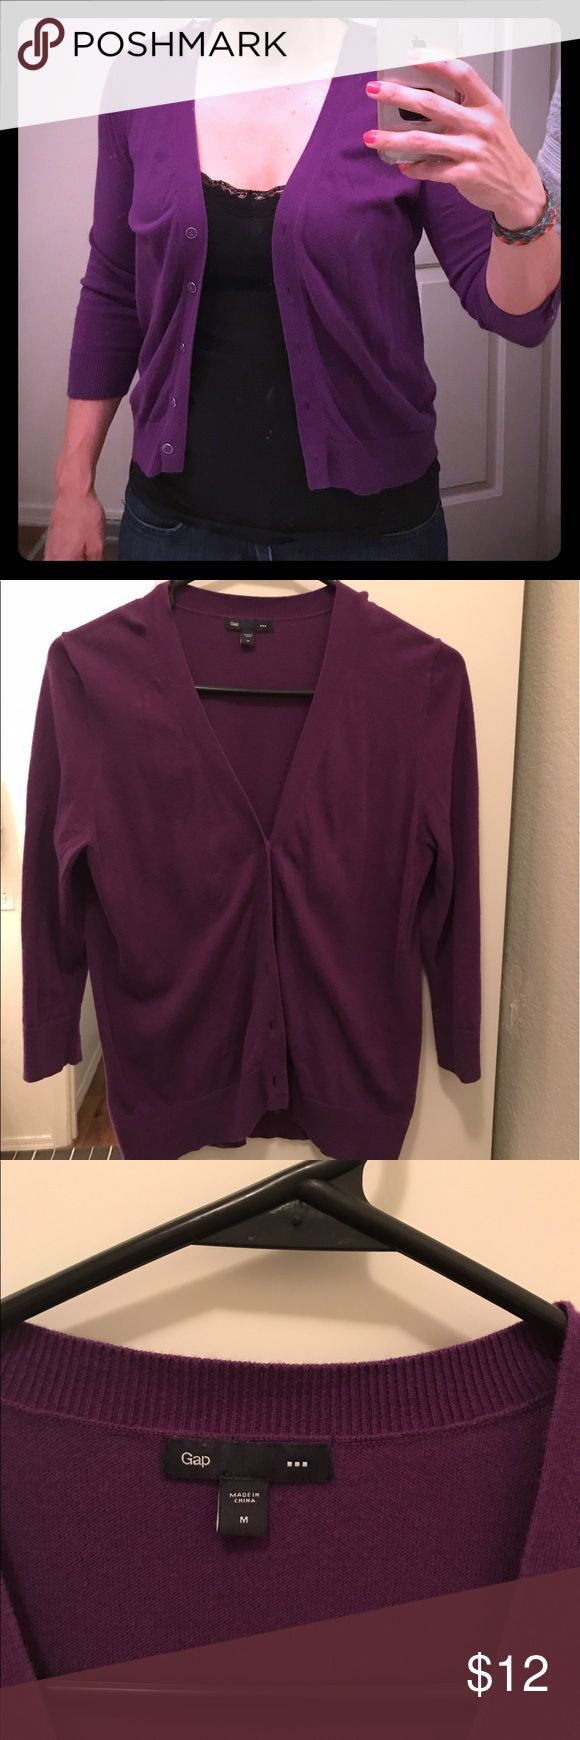 GAP Women's Purple Cardigan Size Medium GAP  Women's Cardigan. Size Medium. Purple. Buttons down. Perfect for over a dress or a tank. Can dress up any outfit. Cute for the office or a night out. GAP Sweaters Cardigans